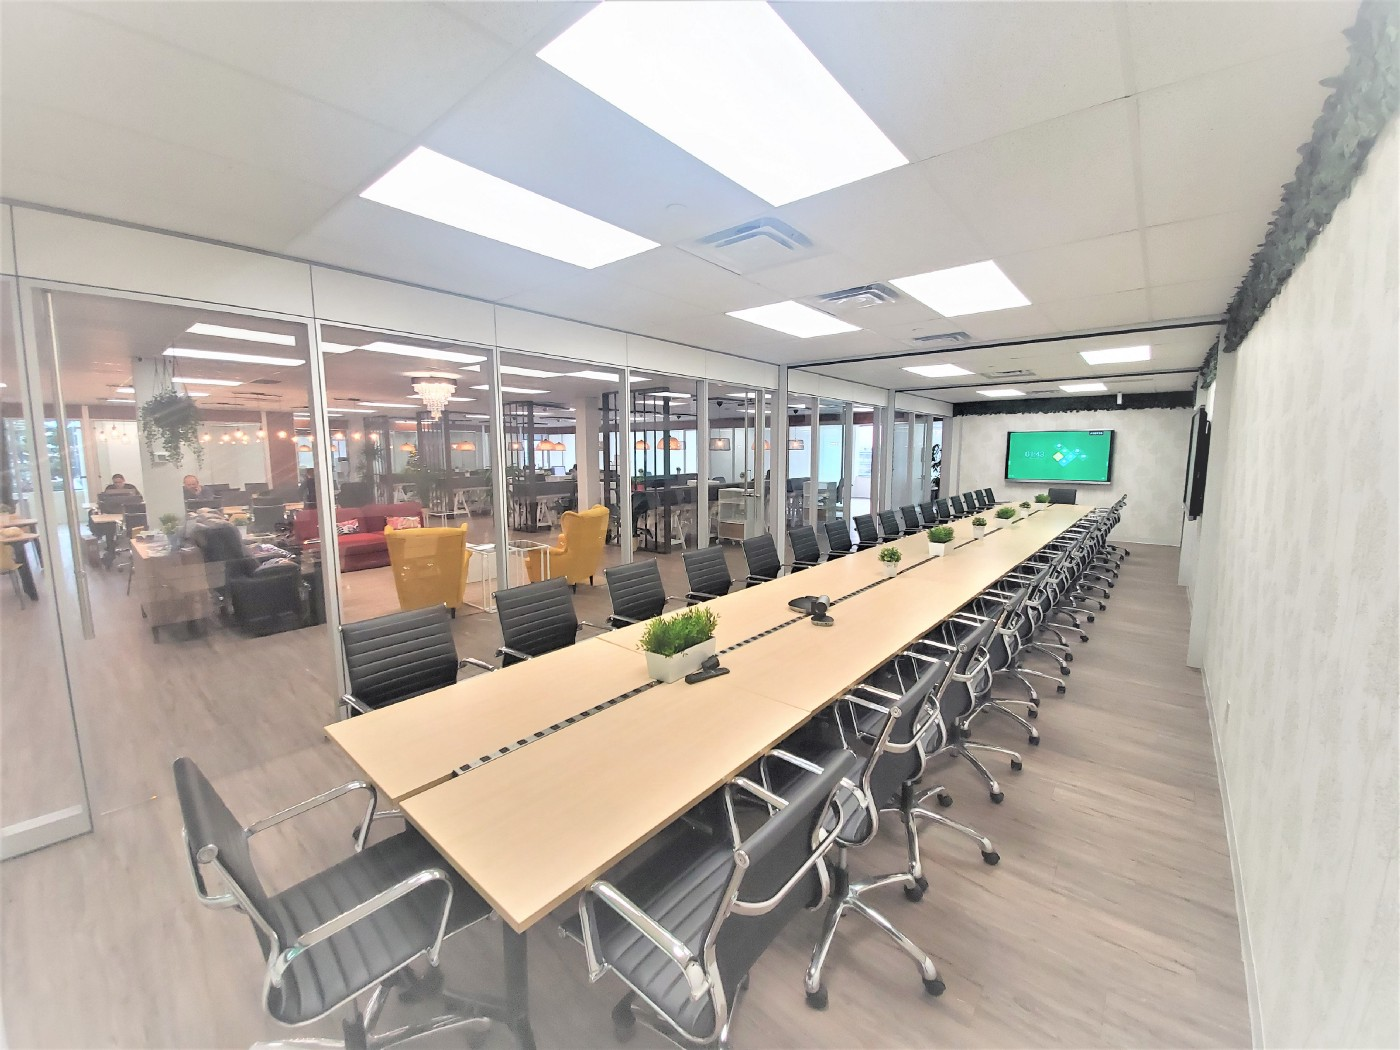 Touchdown Coworking Space Conference Room—Seats 34 people, is 572 sqft and 44 feet long.